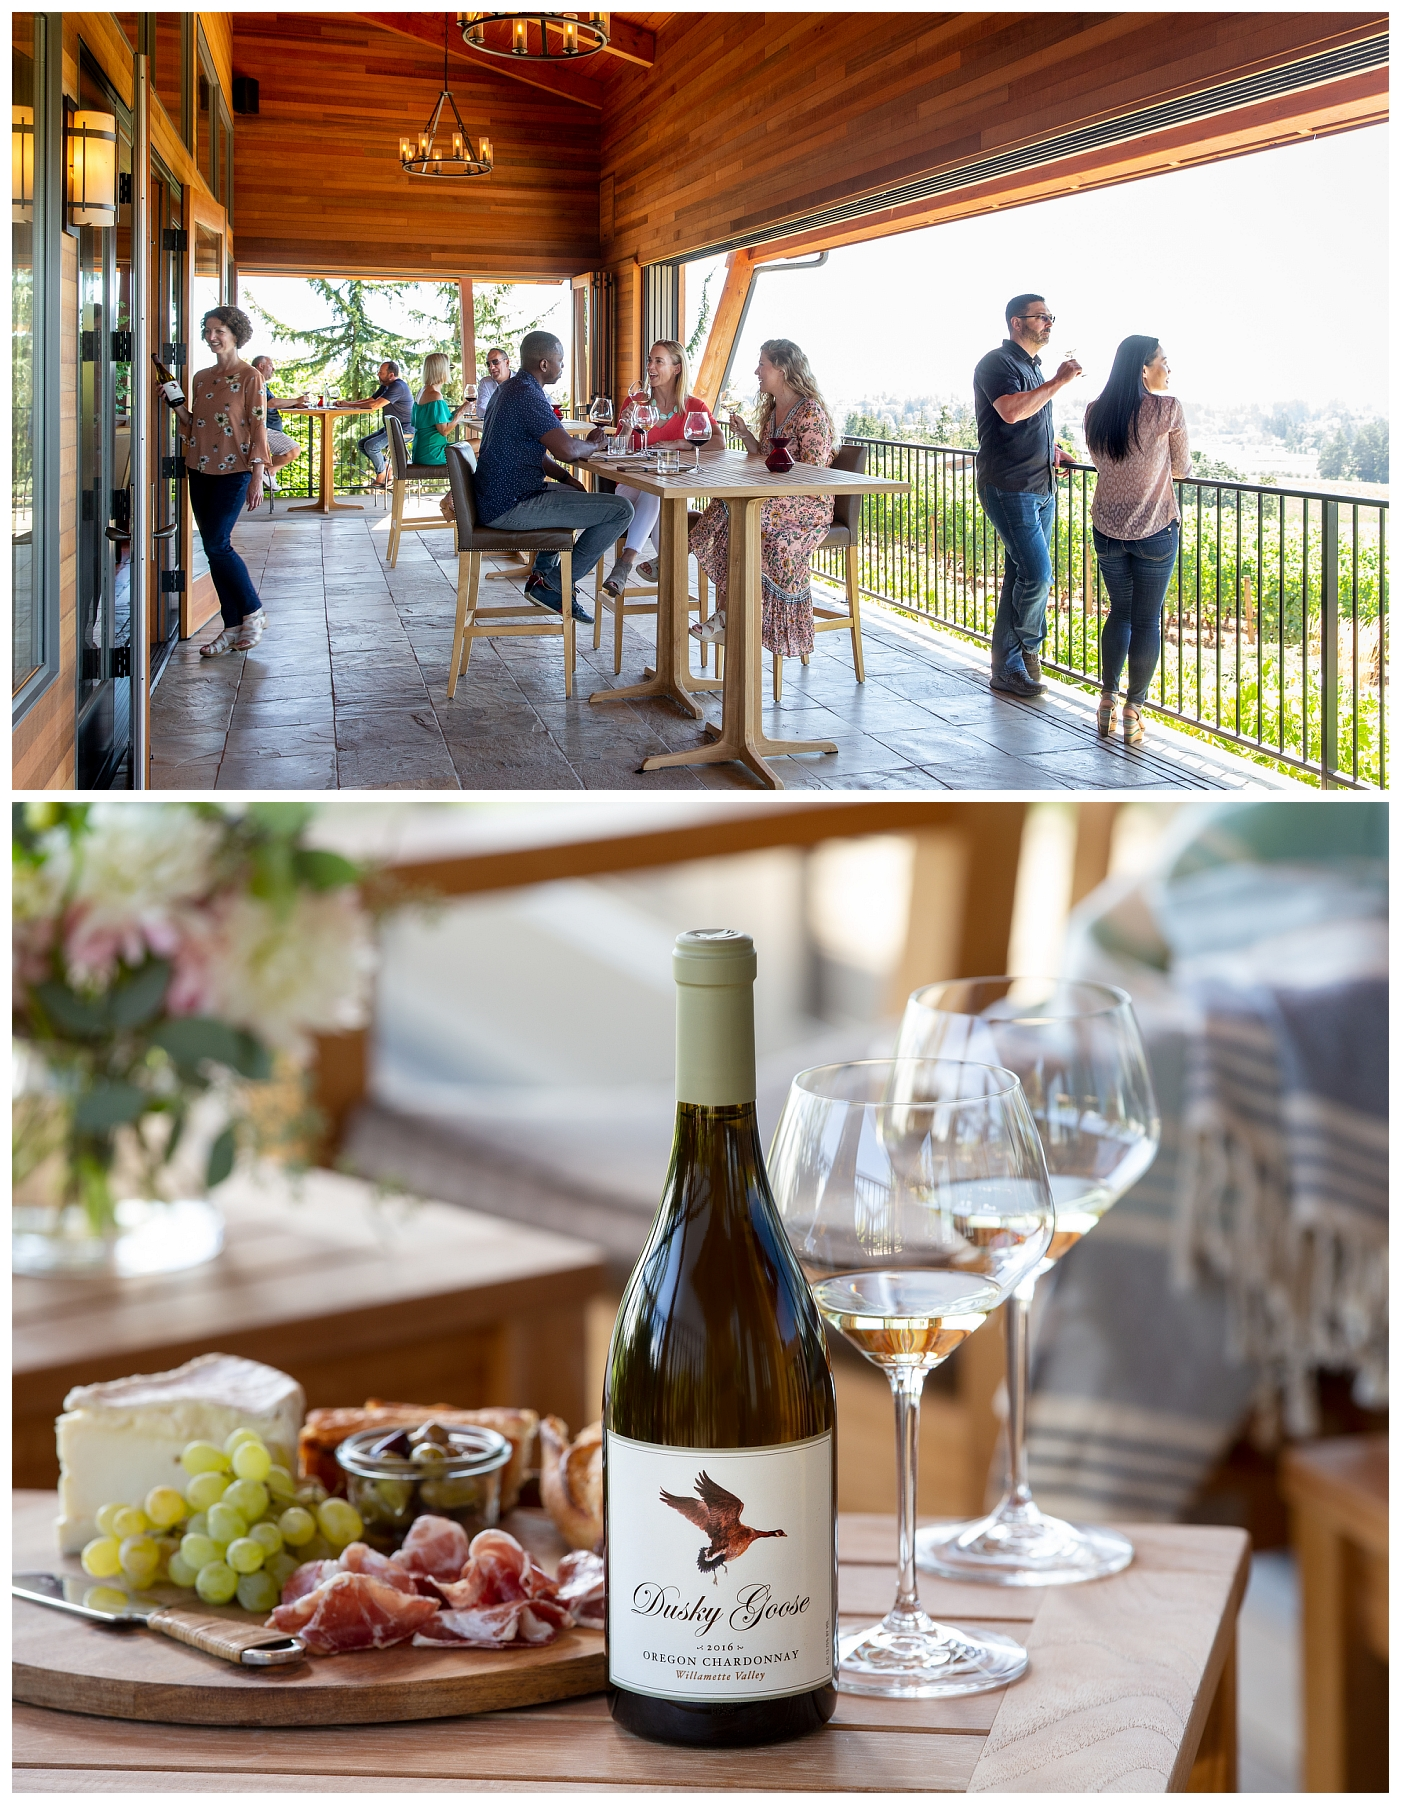 Dusky Goose tasting room and wine bottle styled shot